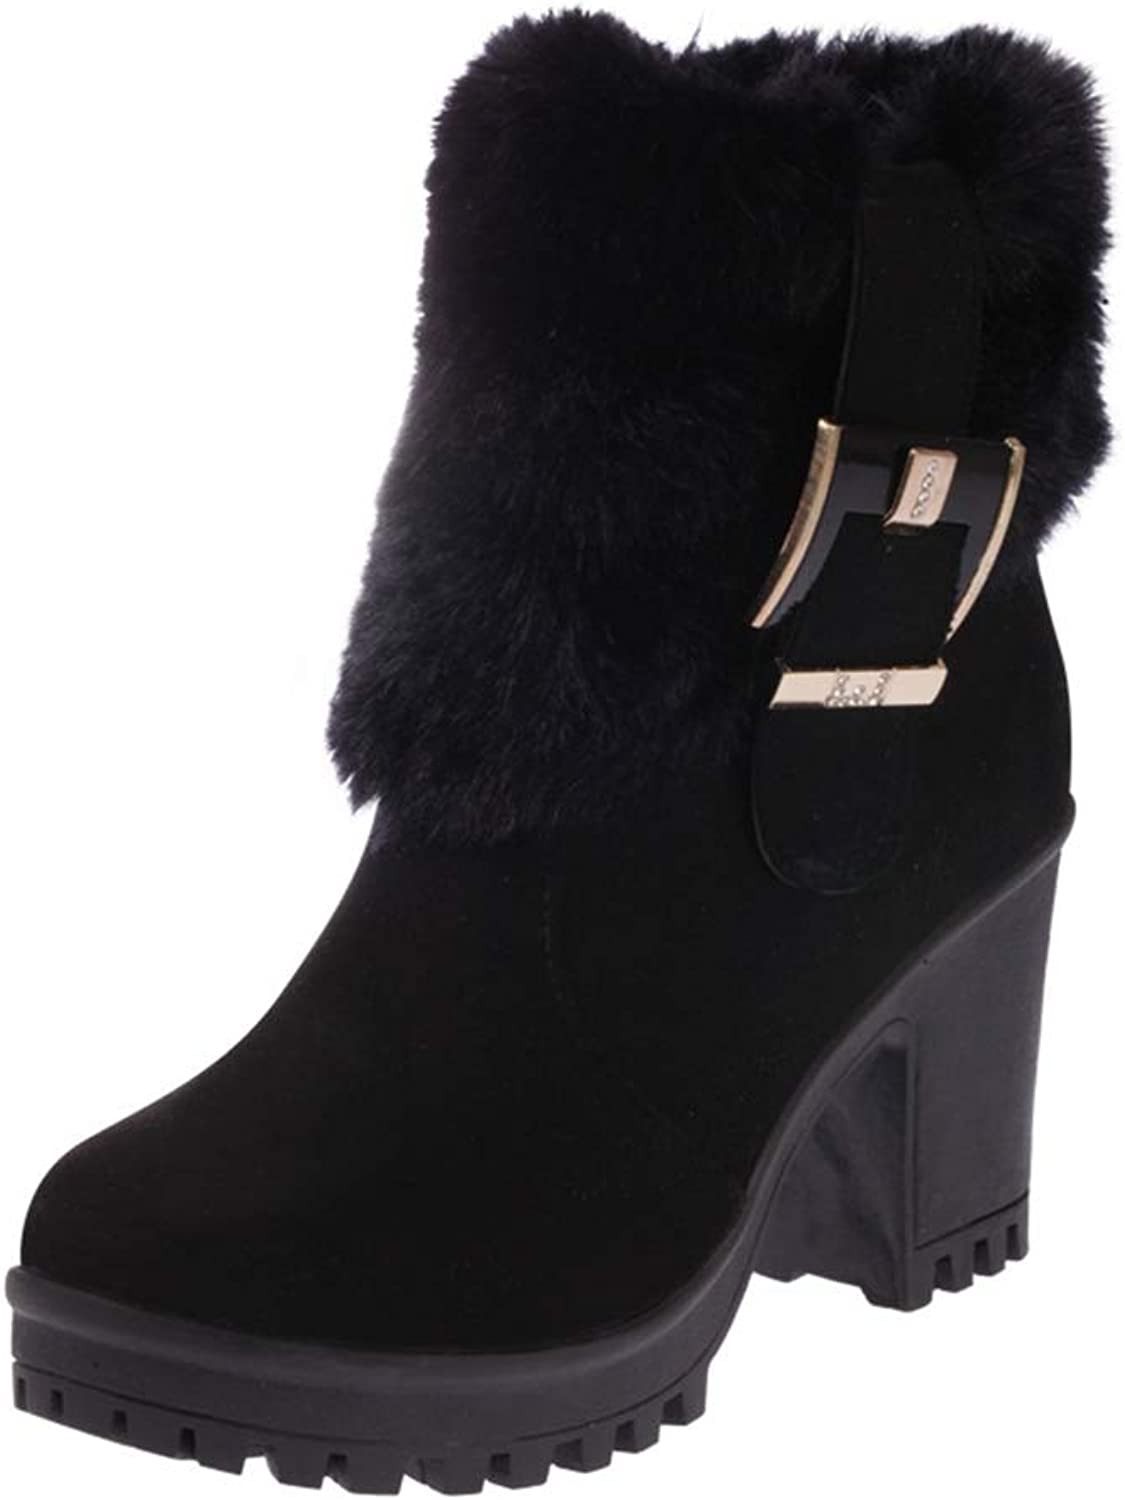 CYBLING Women's Winter Fluffy Snow Boots Warm Suede Chunky High Heel Furry Ankle Booties